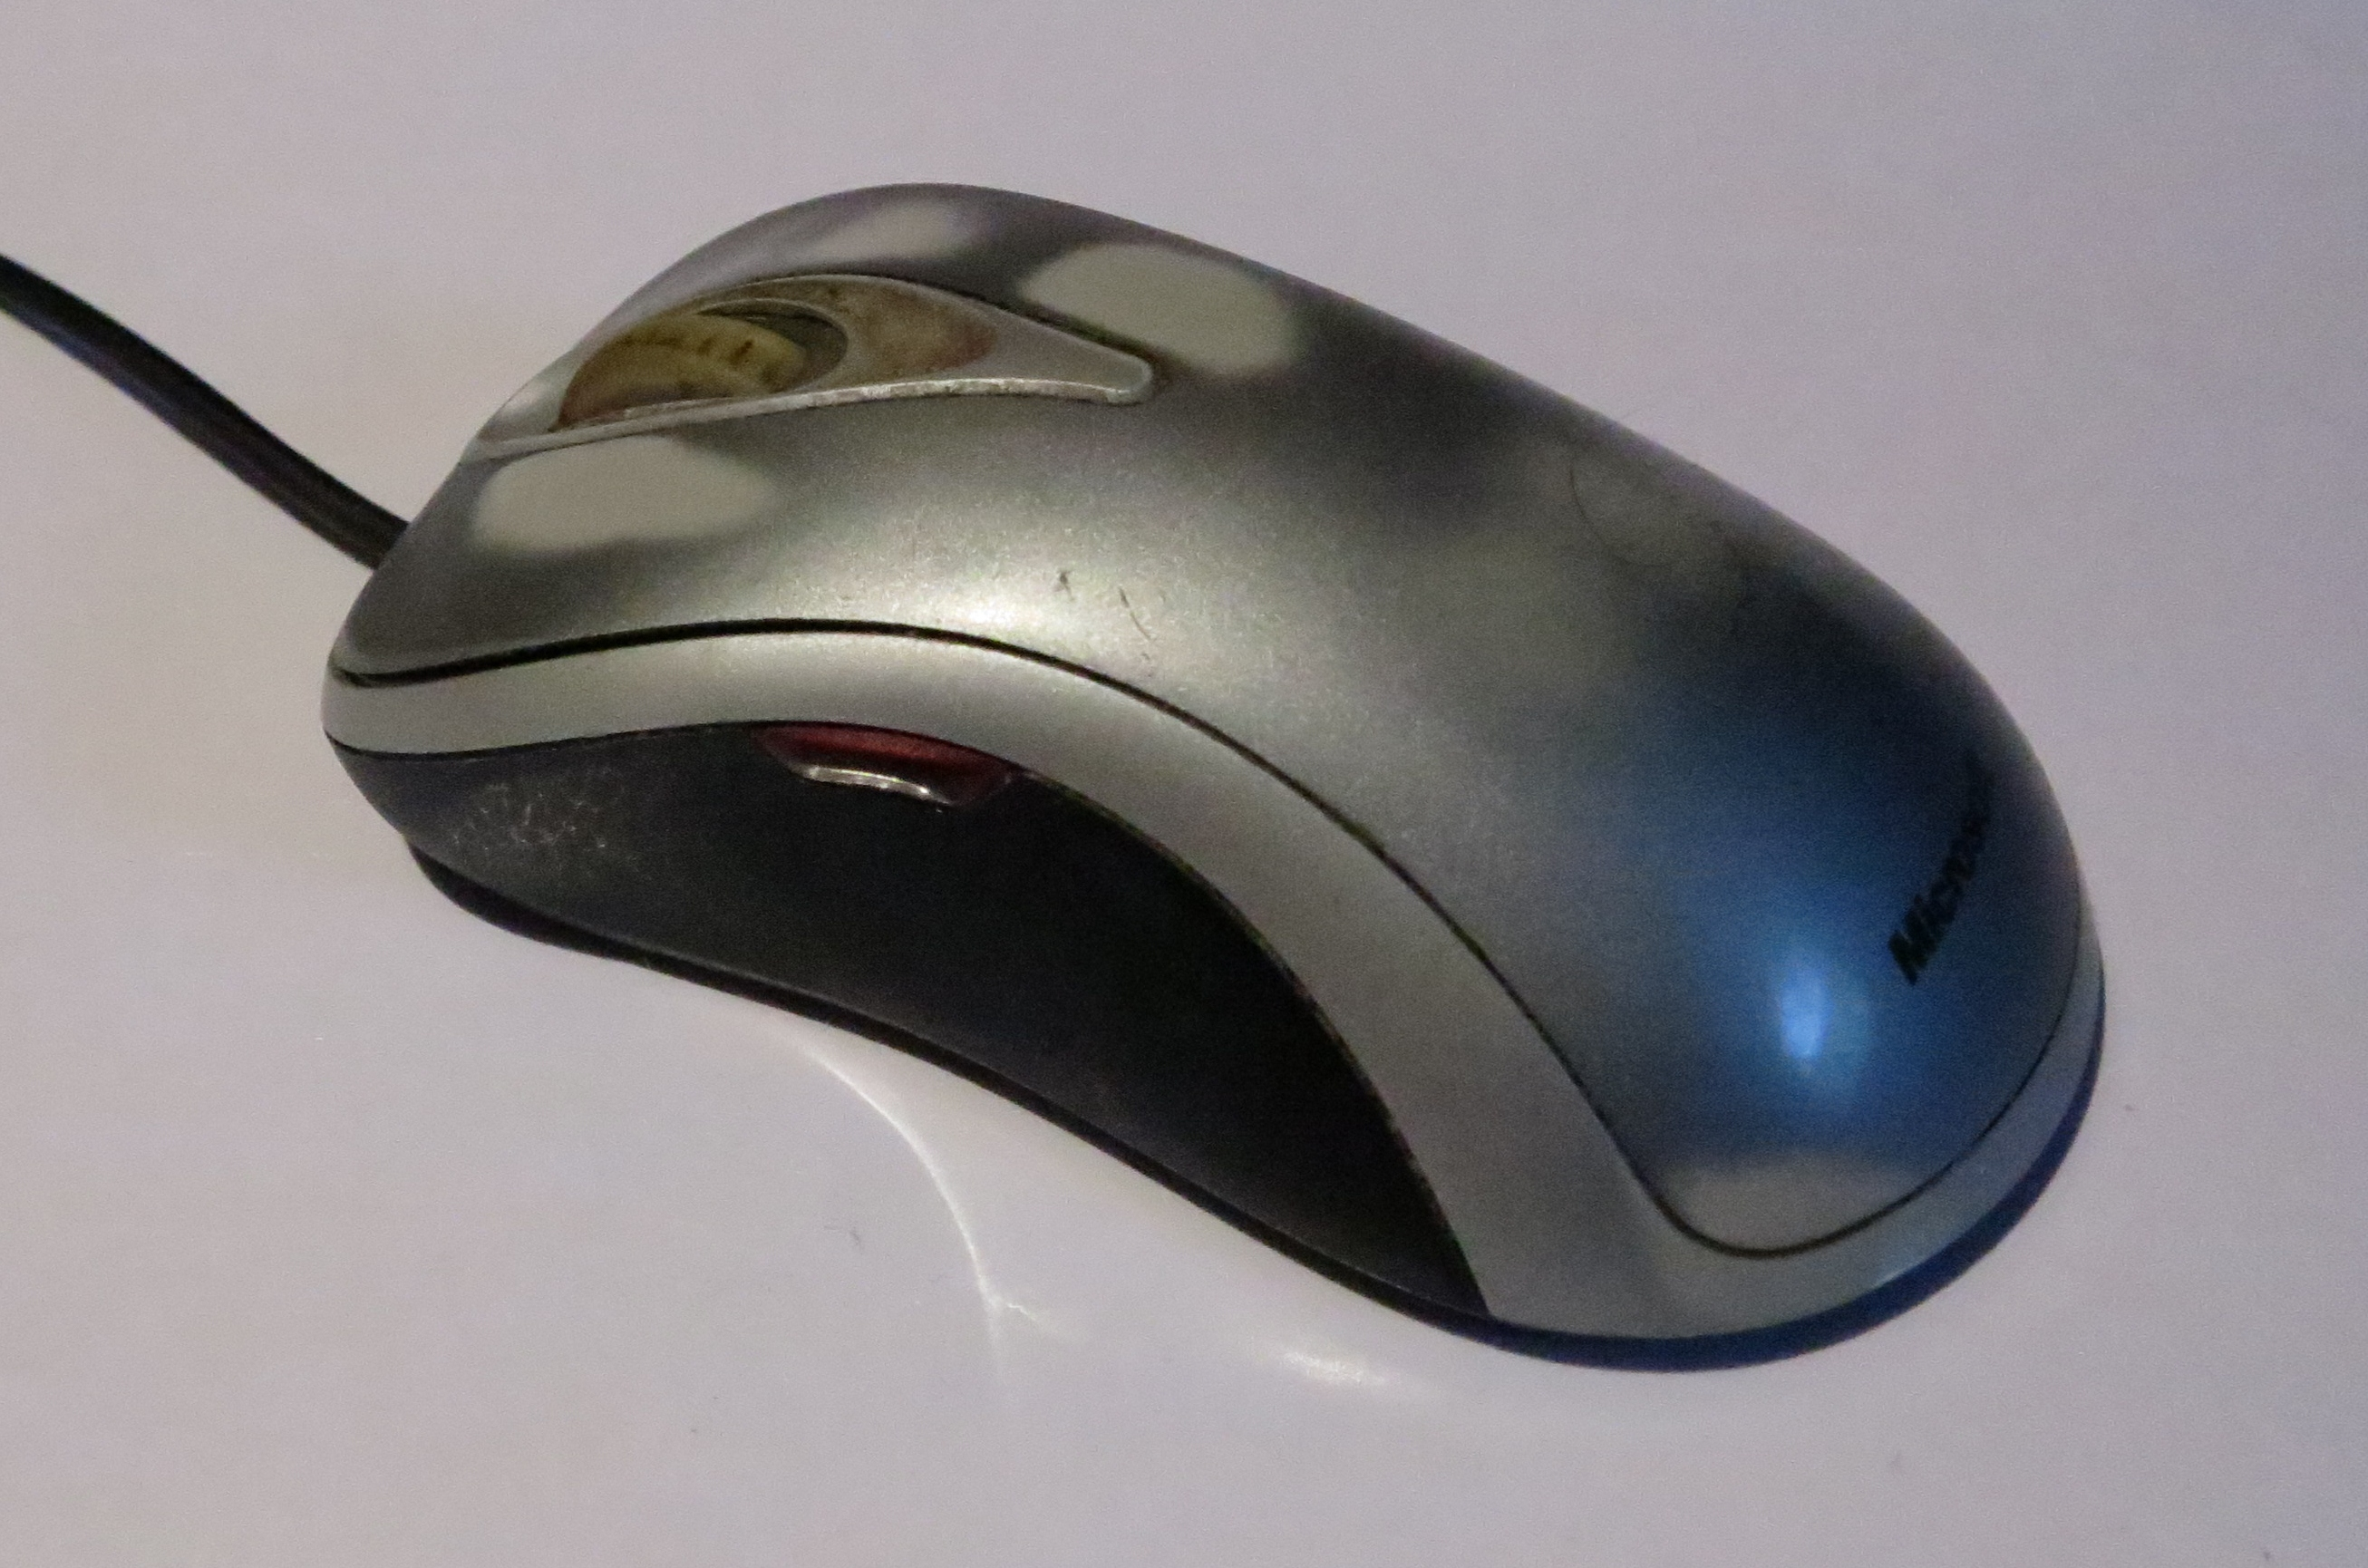 Using Bluetooth for wireless keyboards, mice and game controllers